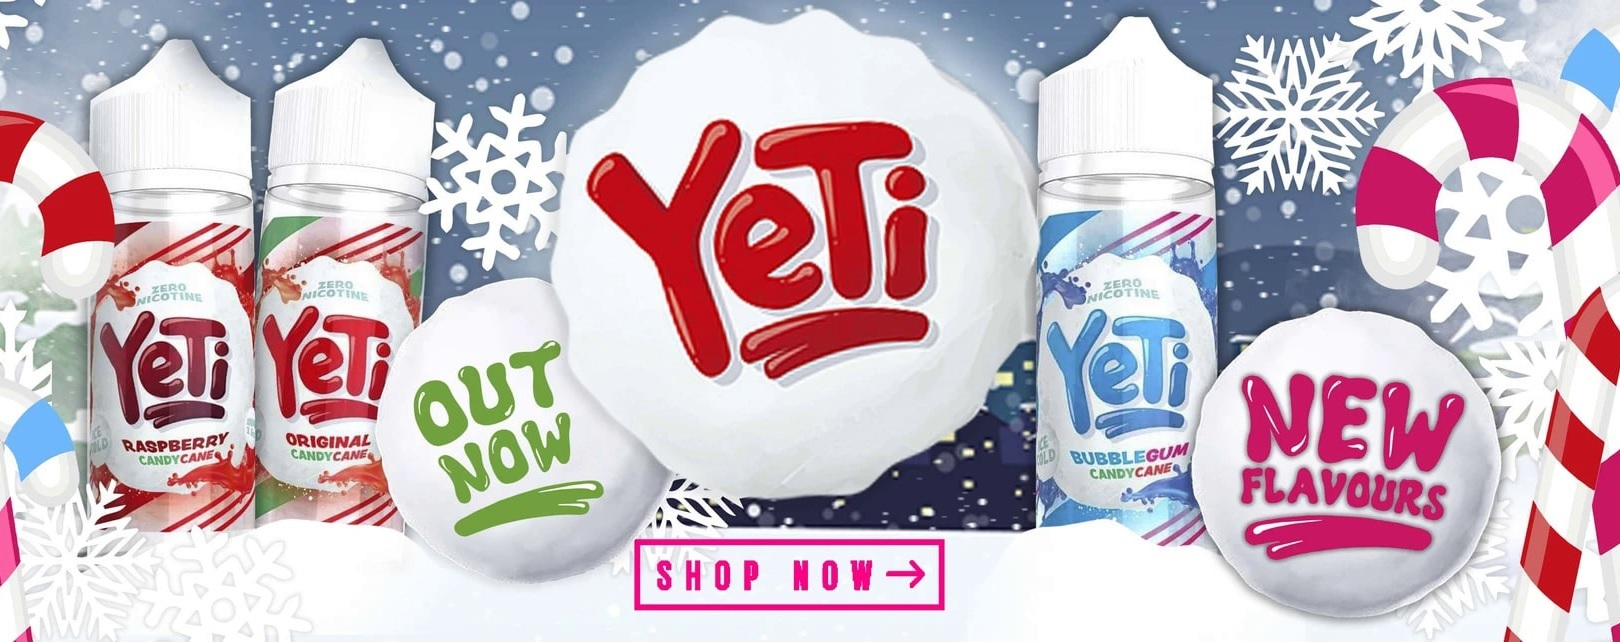 Yeti E-liquid Ireland - Yeti Vape Juice in Ireland